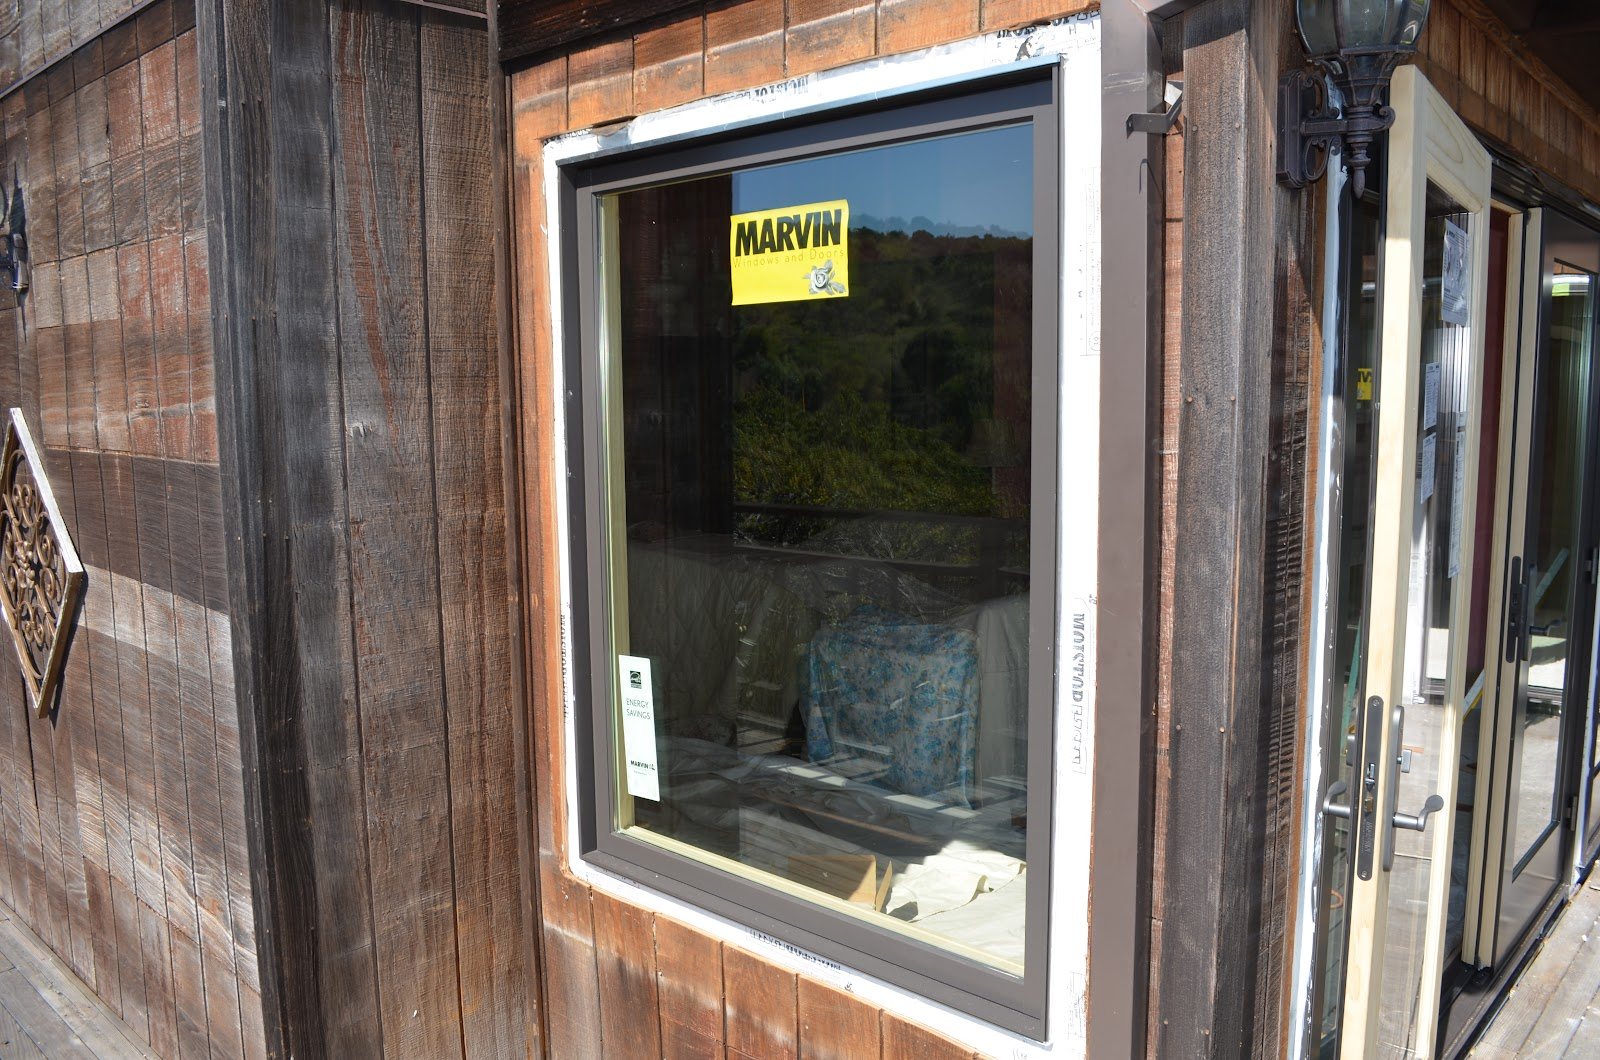 Marvin Bronze Clad Windows and Doors: Project Photos